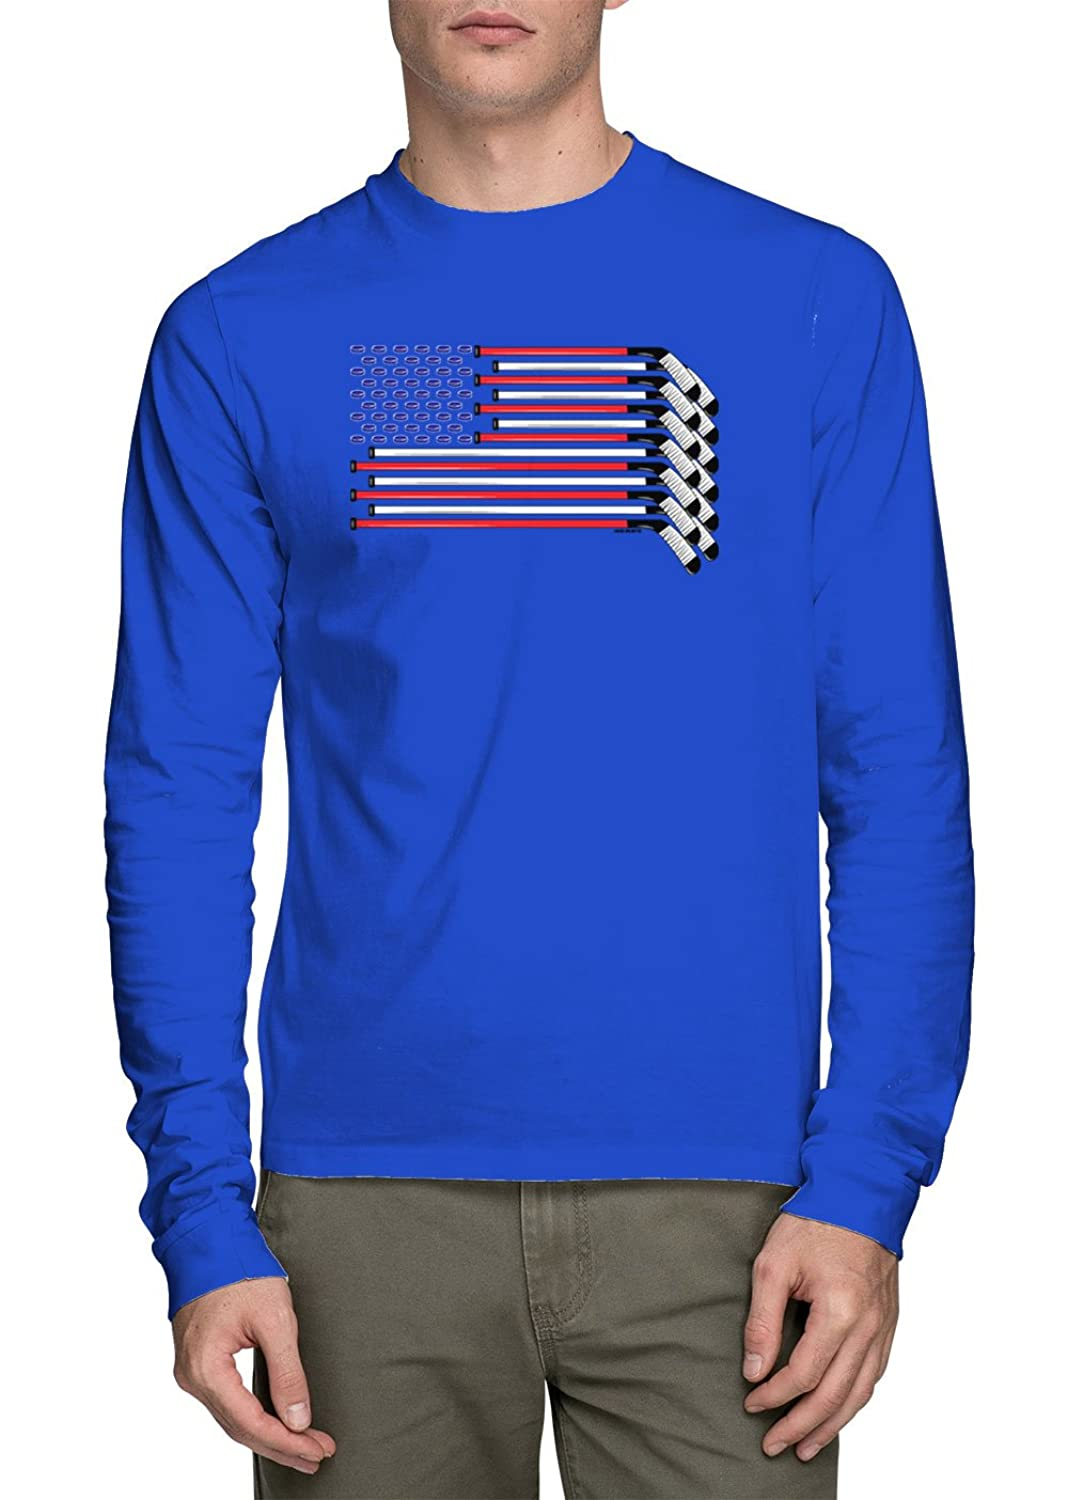 HAASE UNLIMITED Long Sleeves American Flag Made with Hockey Sticks and Puck T-shirt